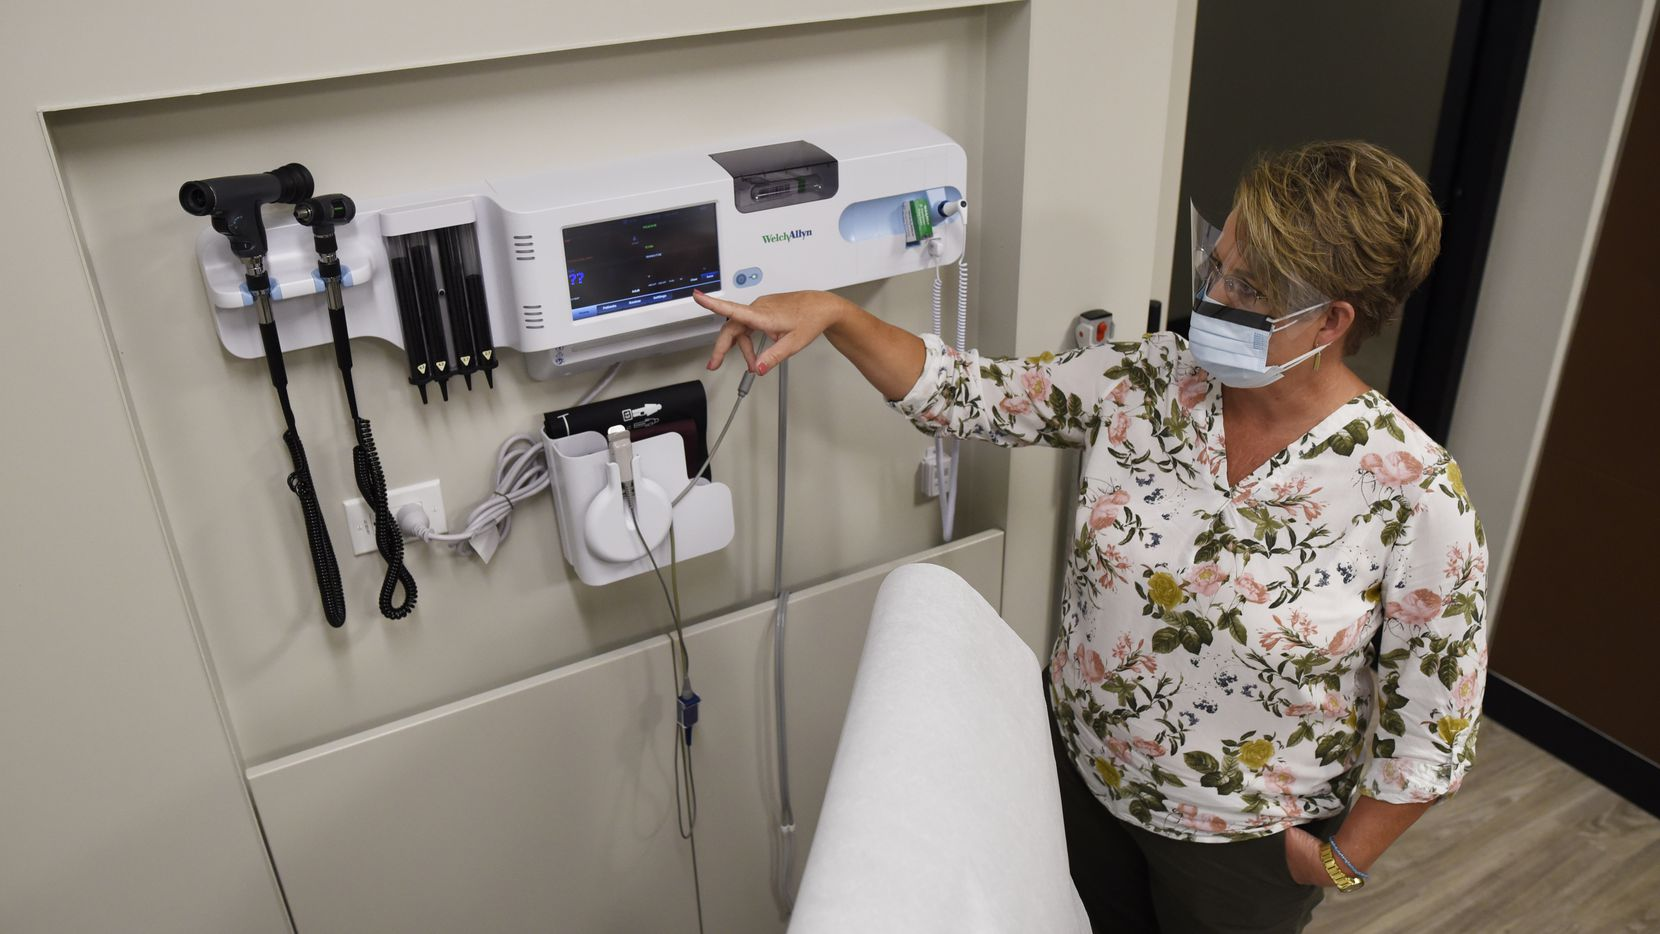 Registered nurse Jodyne Schlachter explains the technology in one of the clinical rooms at the new Amazon health center in Irving. Amazon plans to open five additional clinics in North Texas this year.